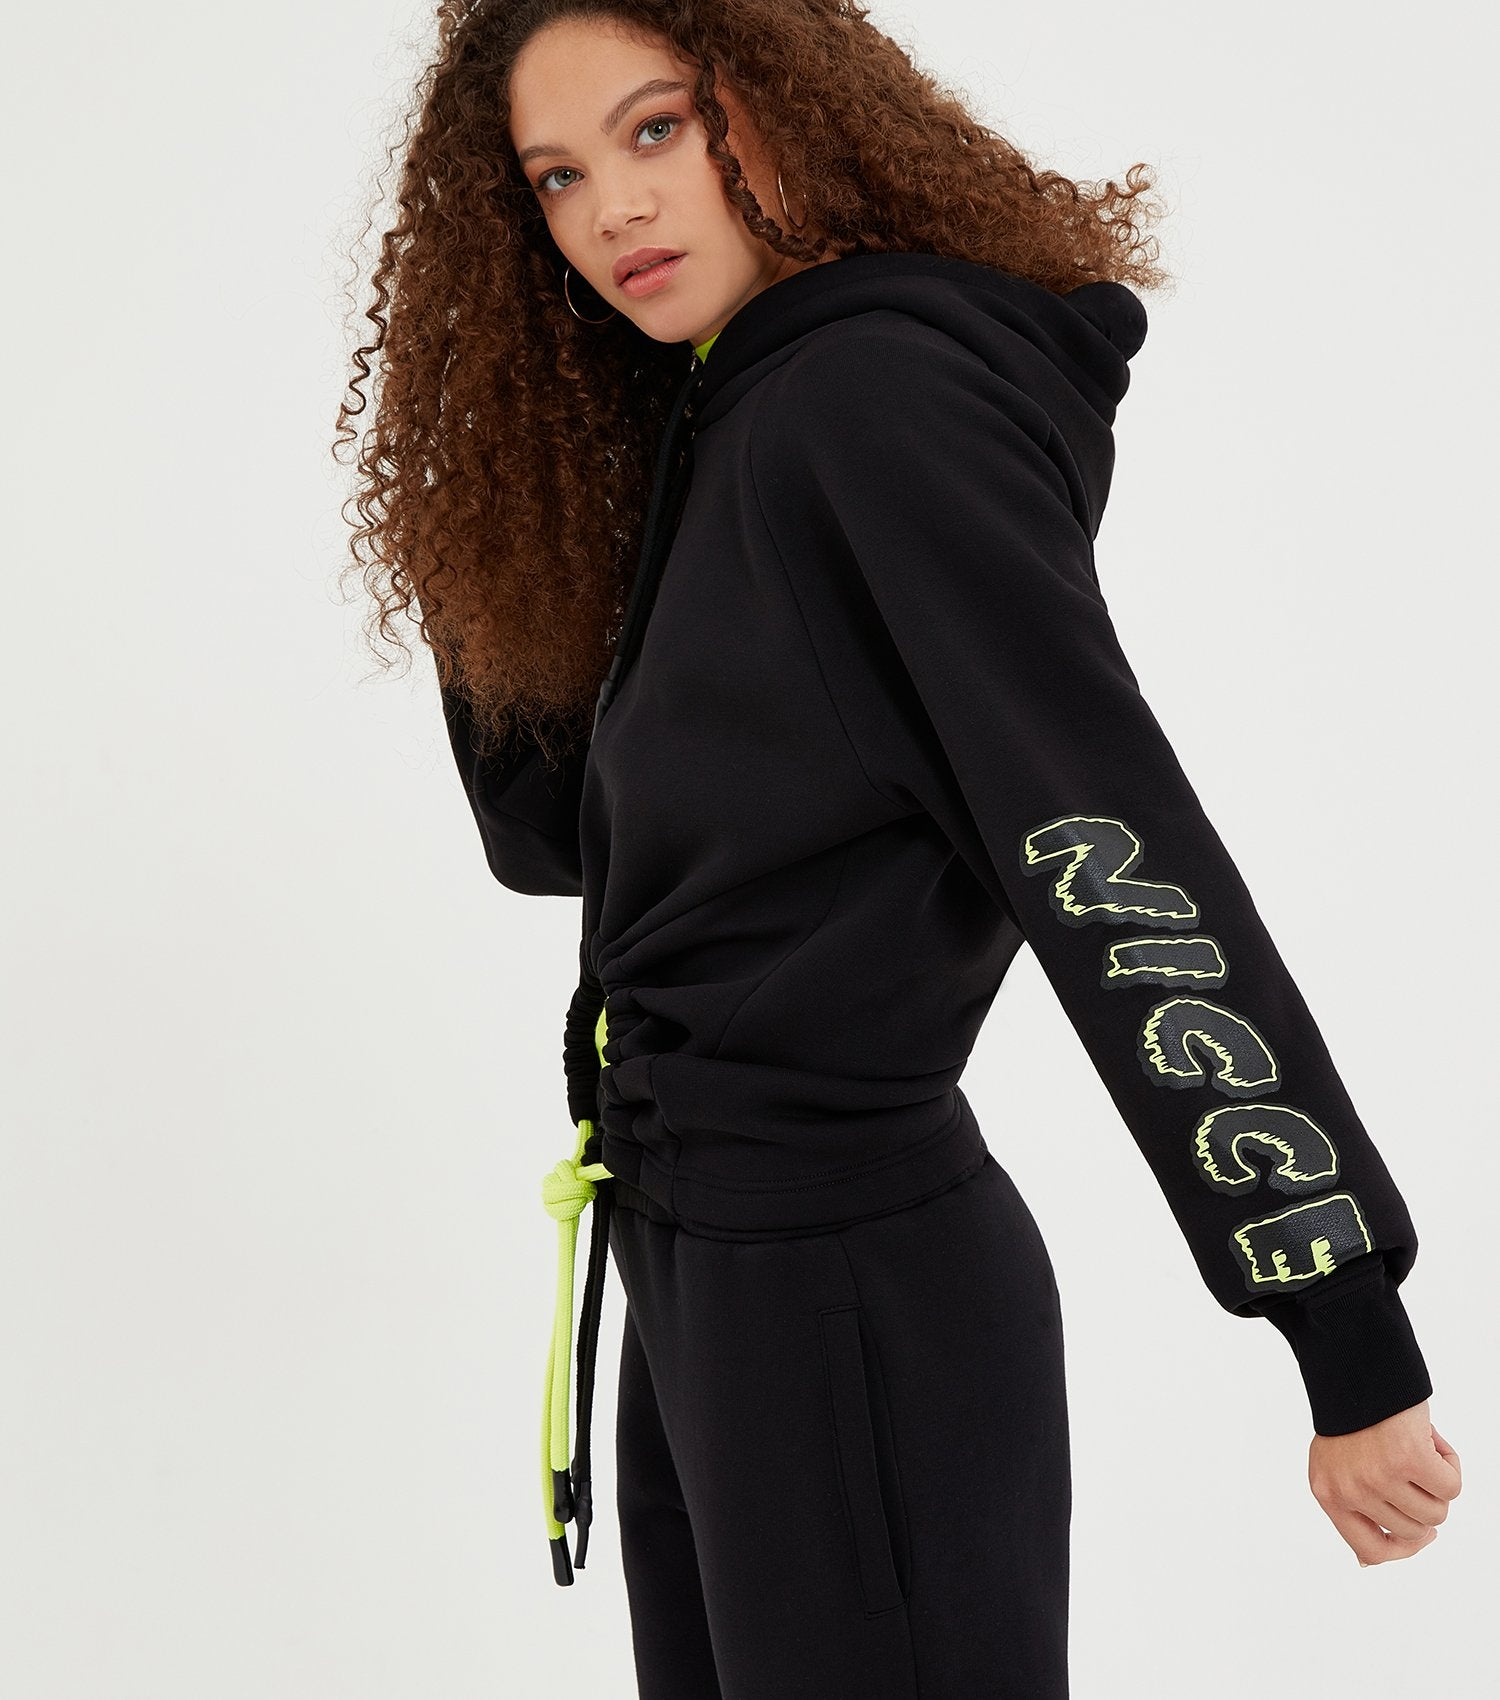 NICCE Womens Genesis Hood | Black, Hoodies